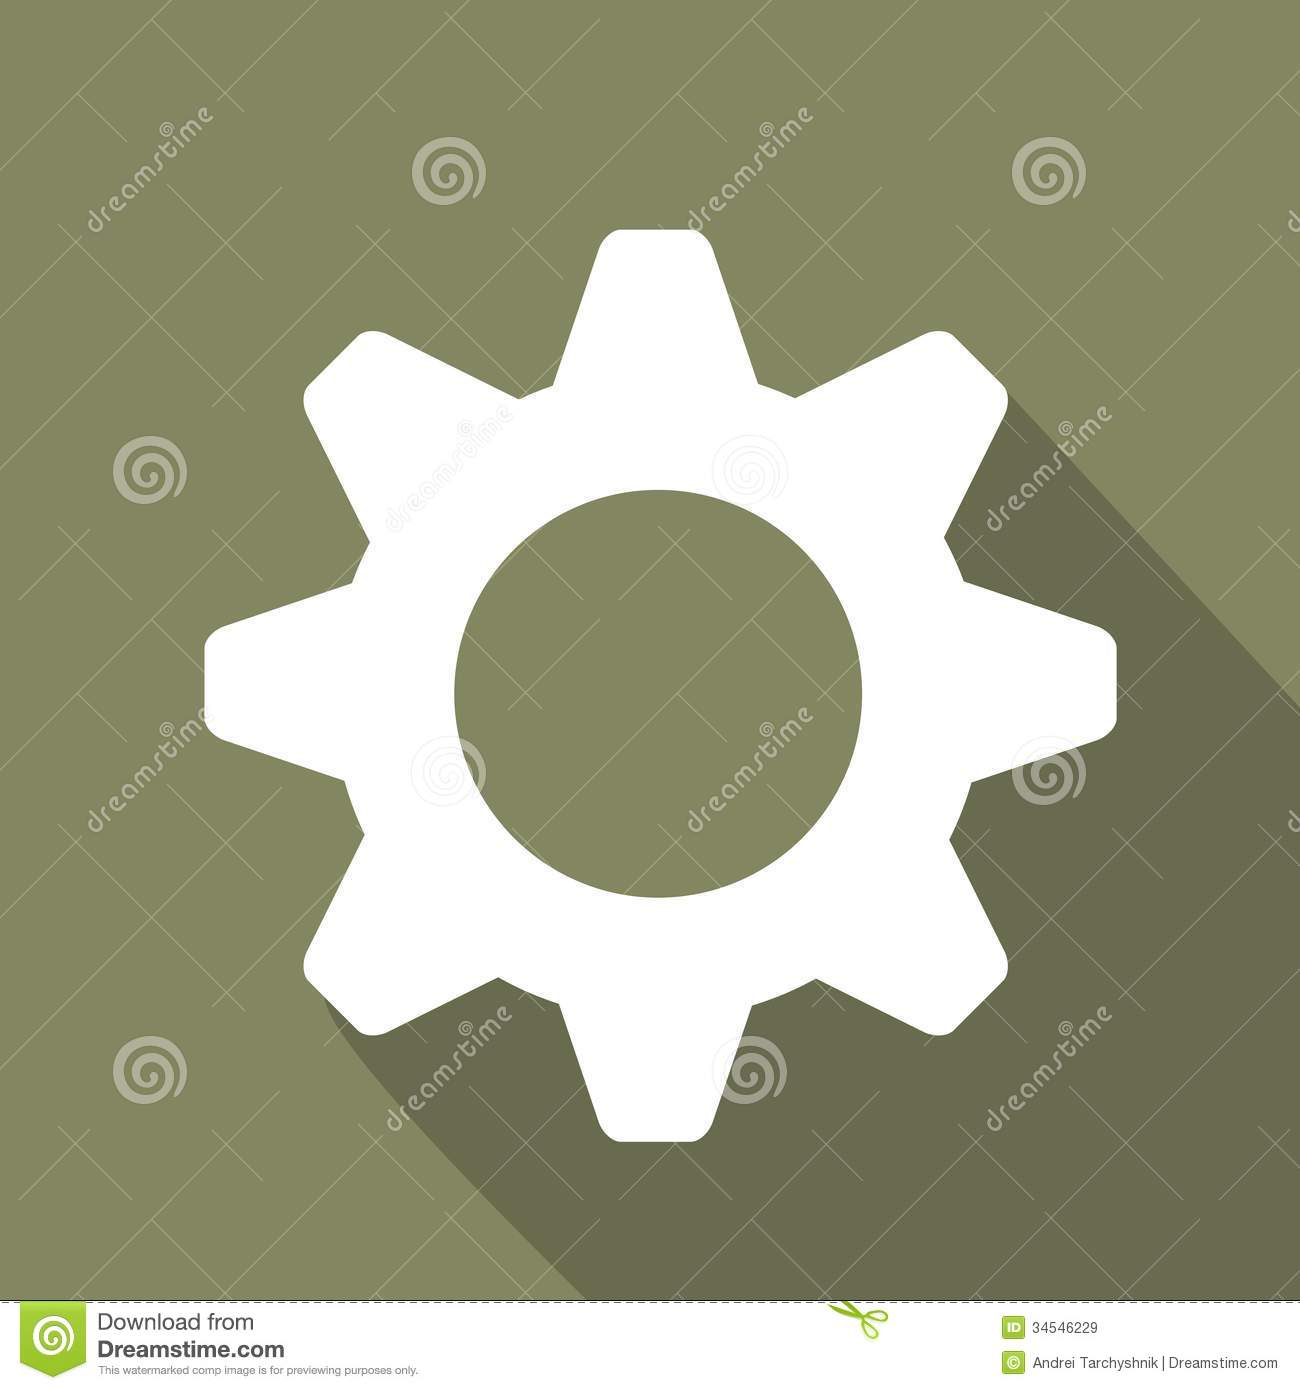 settings web icon flat design royalty free stock images